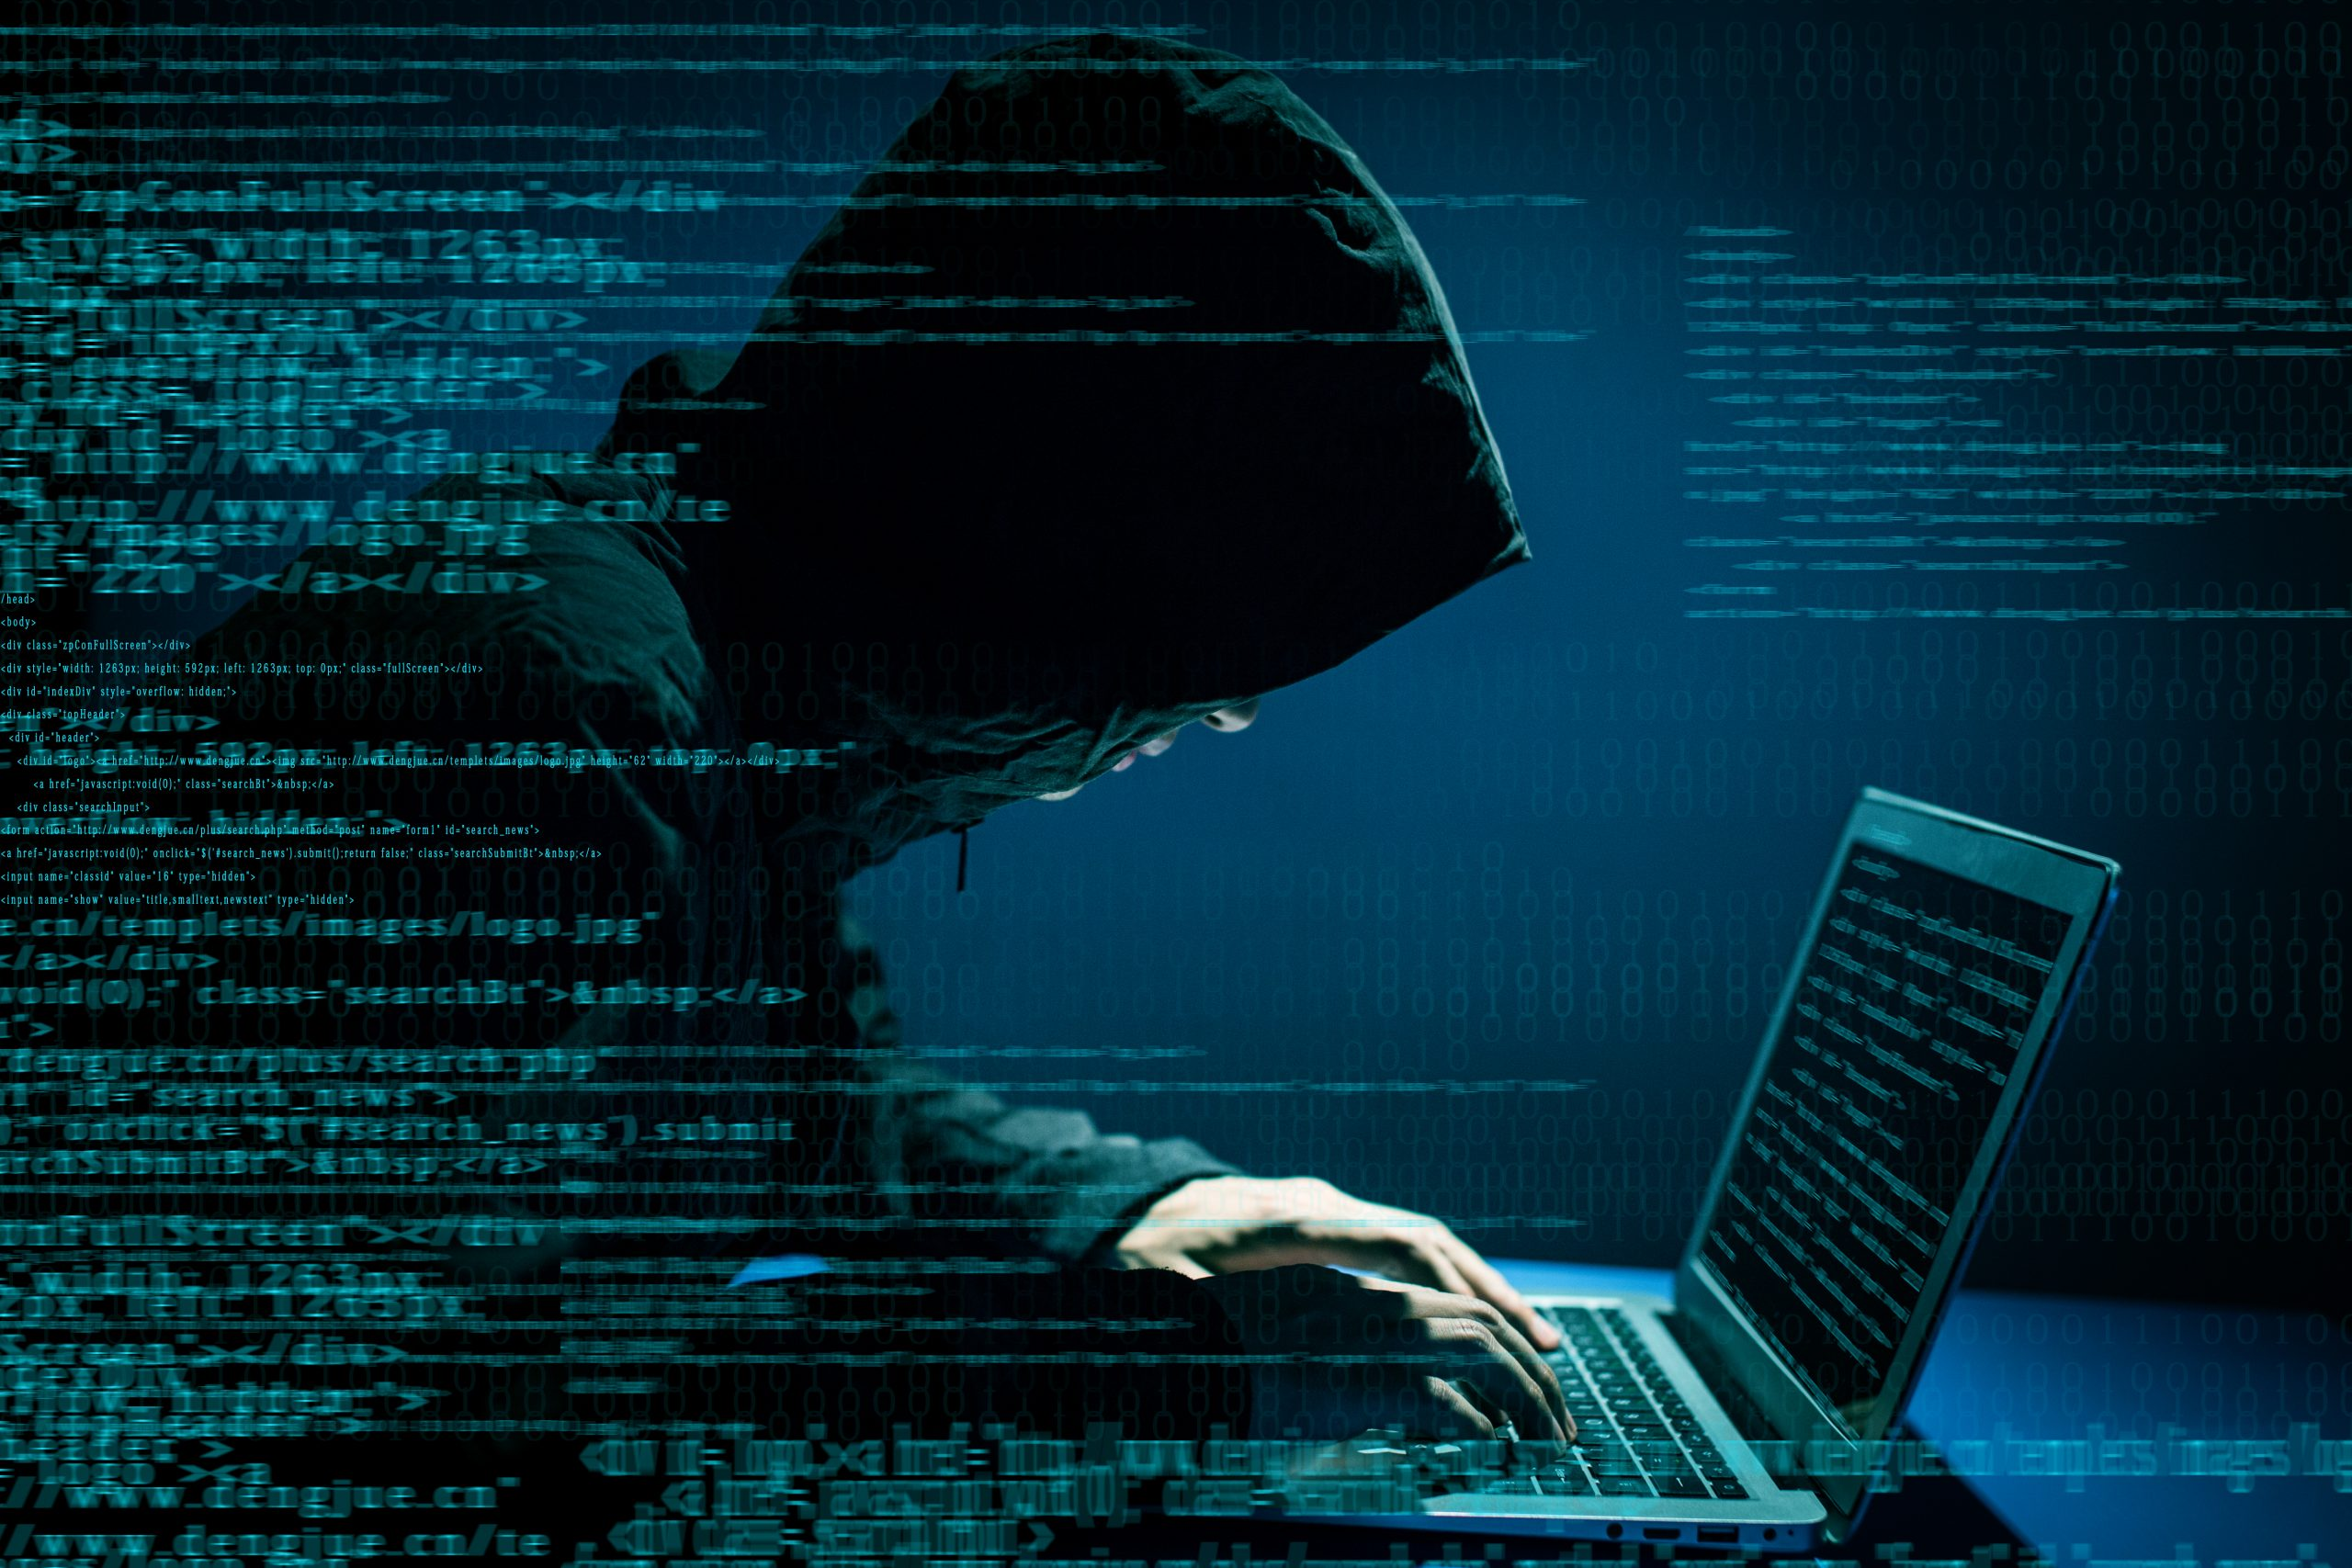 Hacker attacking law firm